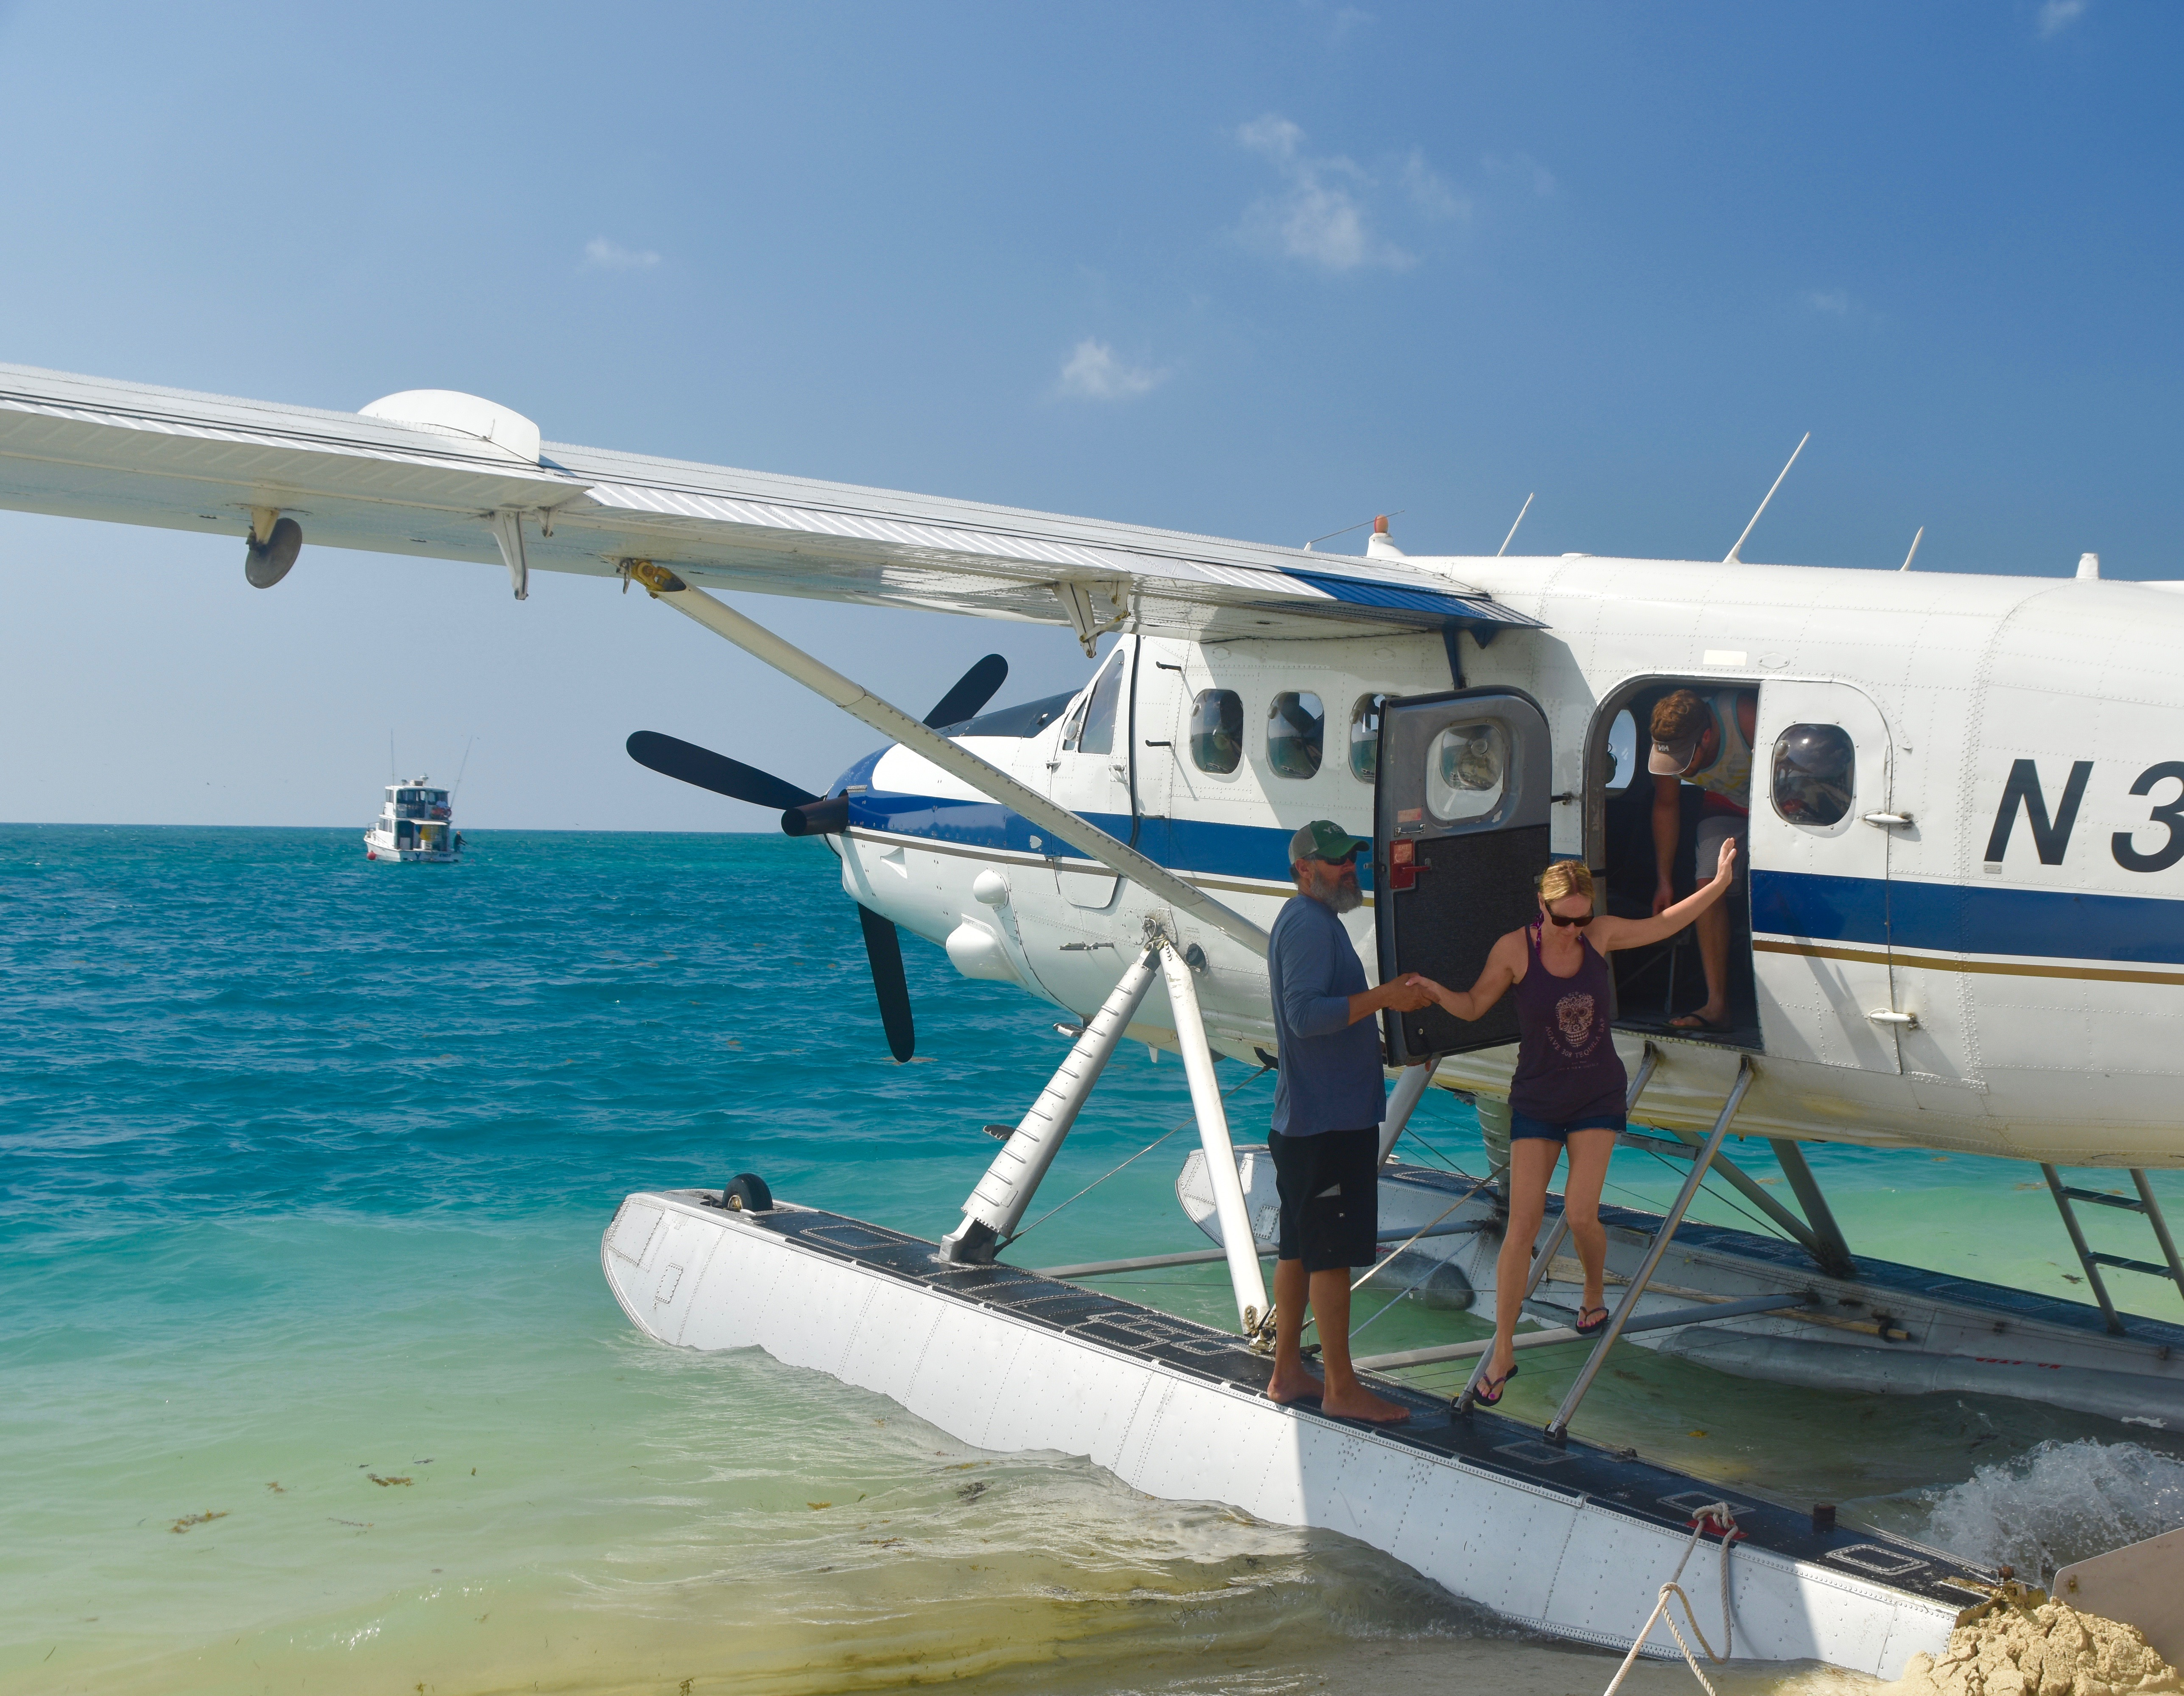 Disembarking on the Dry Tortugas